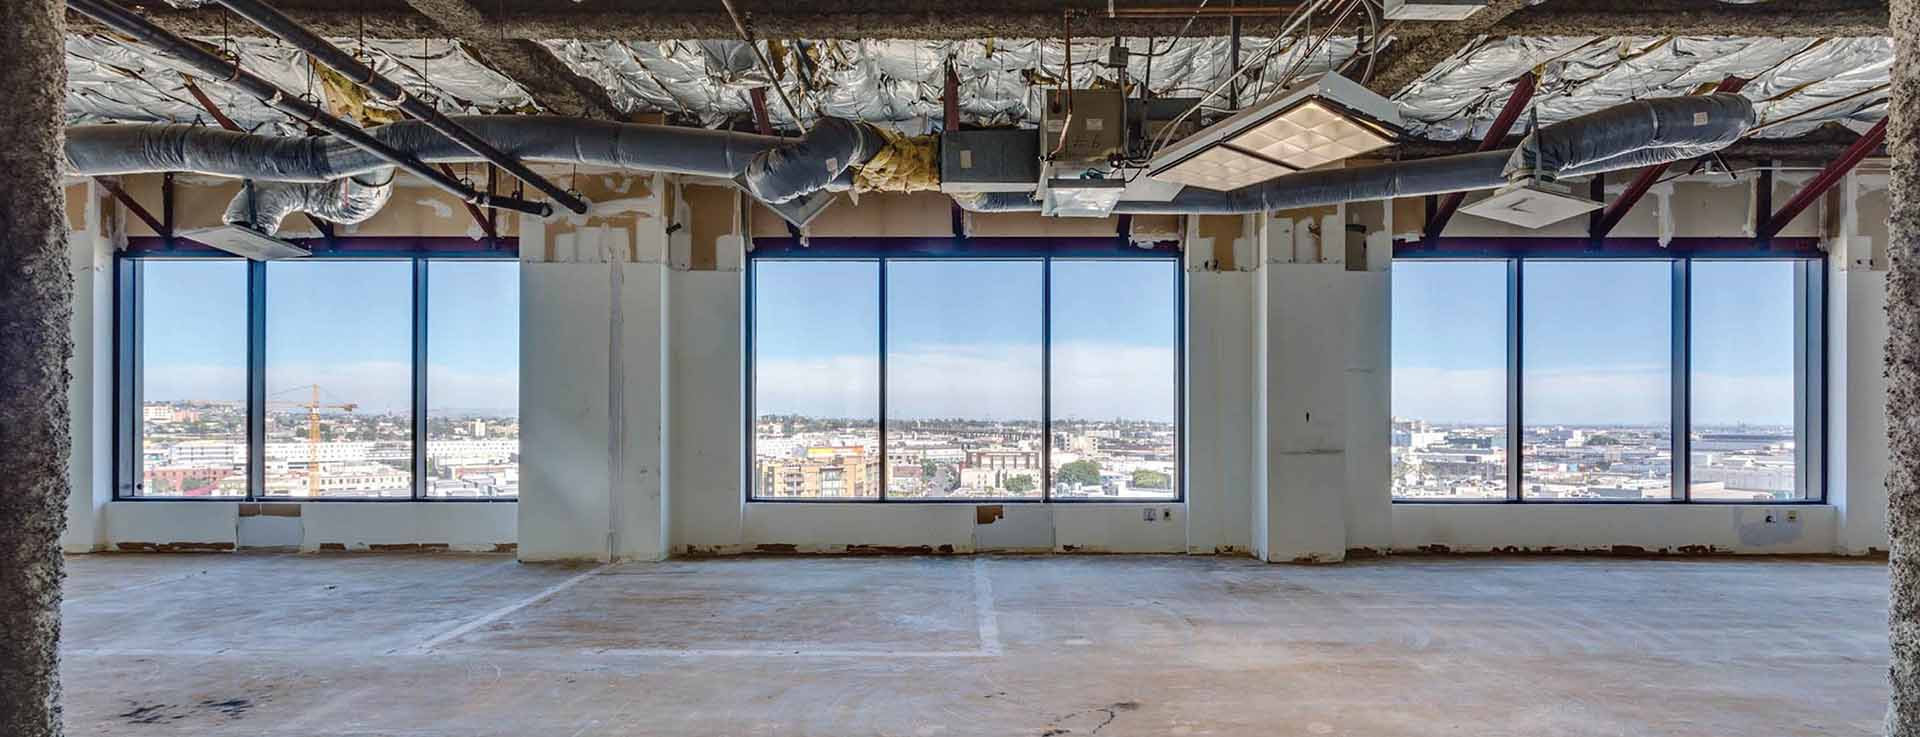 Unfurnished office / commercial space in DTLA.